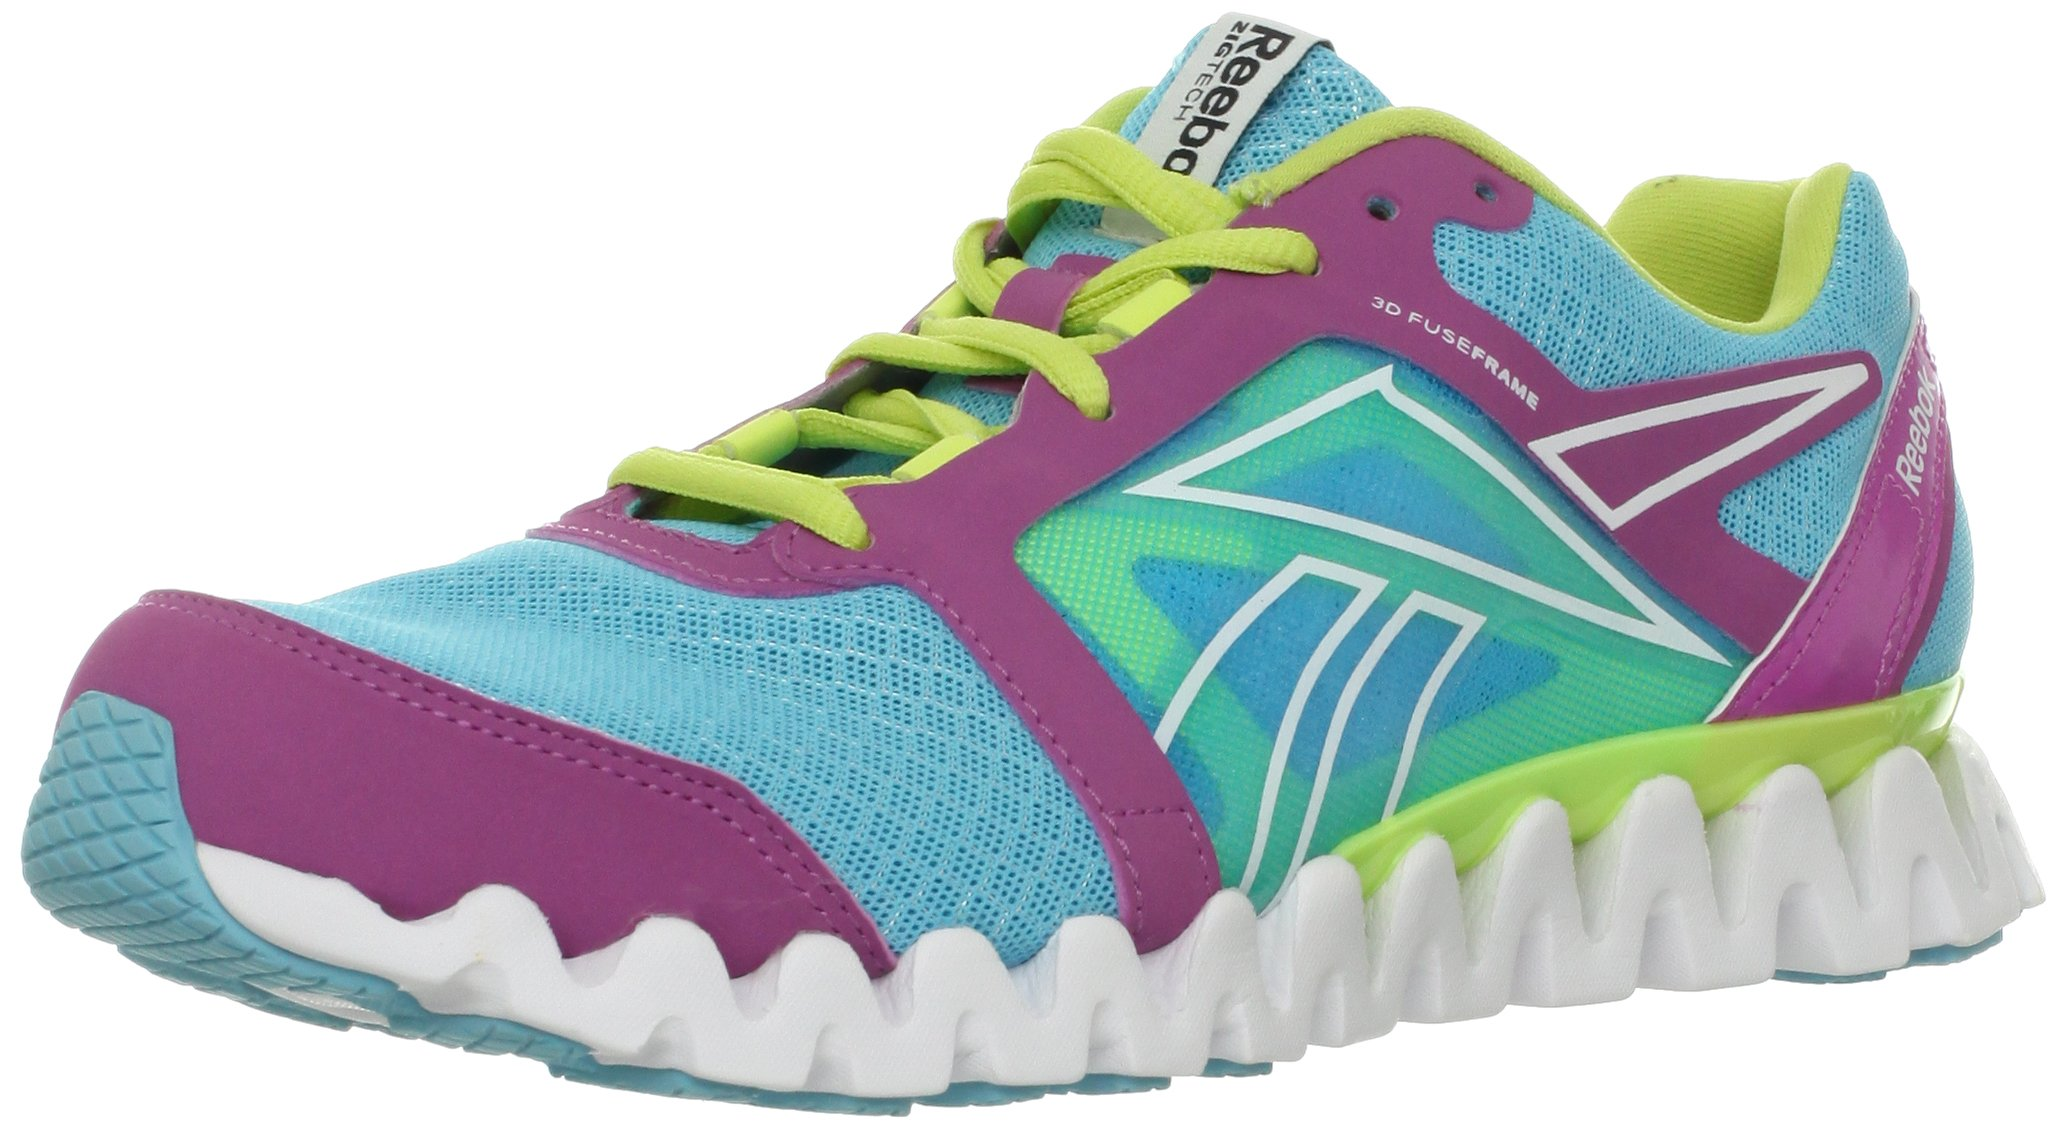 Reebok Women's Zigquick Fire Cross-Training Shoe,Watery Blue/Cool Aloe/Iced Berry/White,10 M US by Reebok (Image #1)